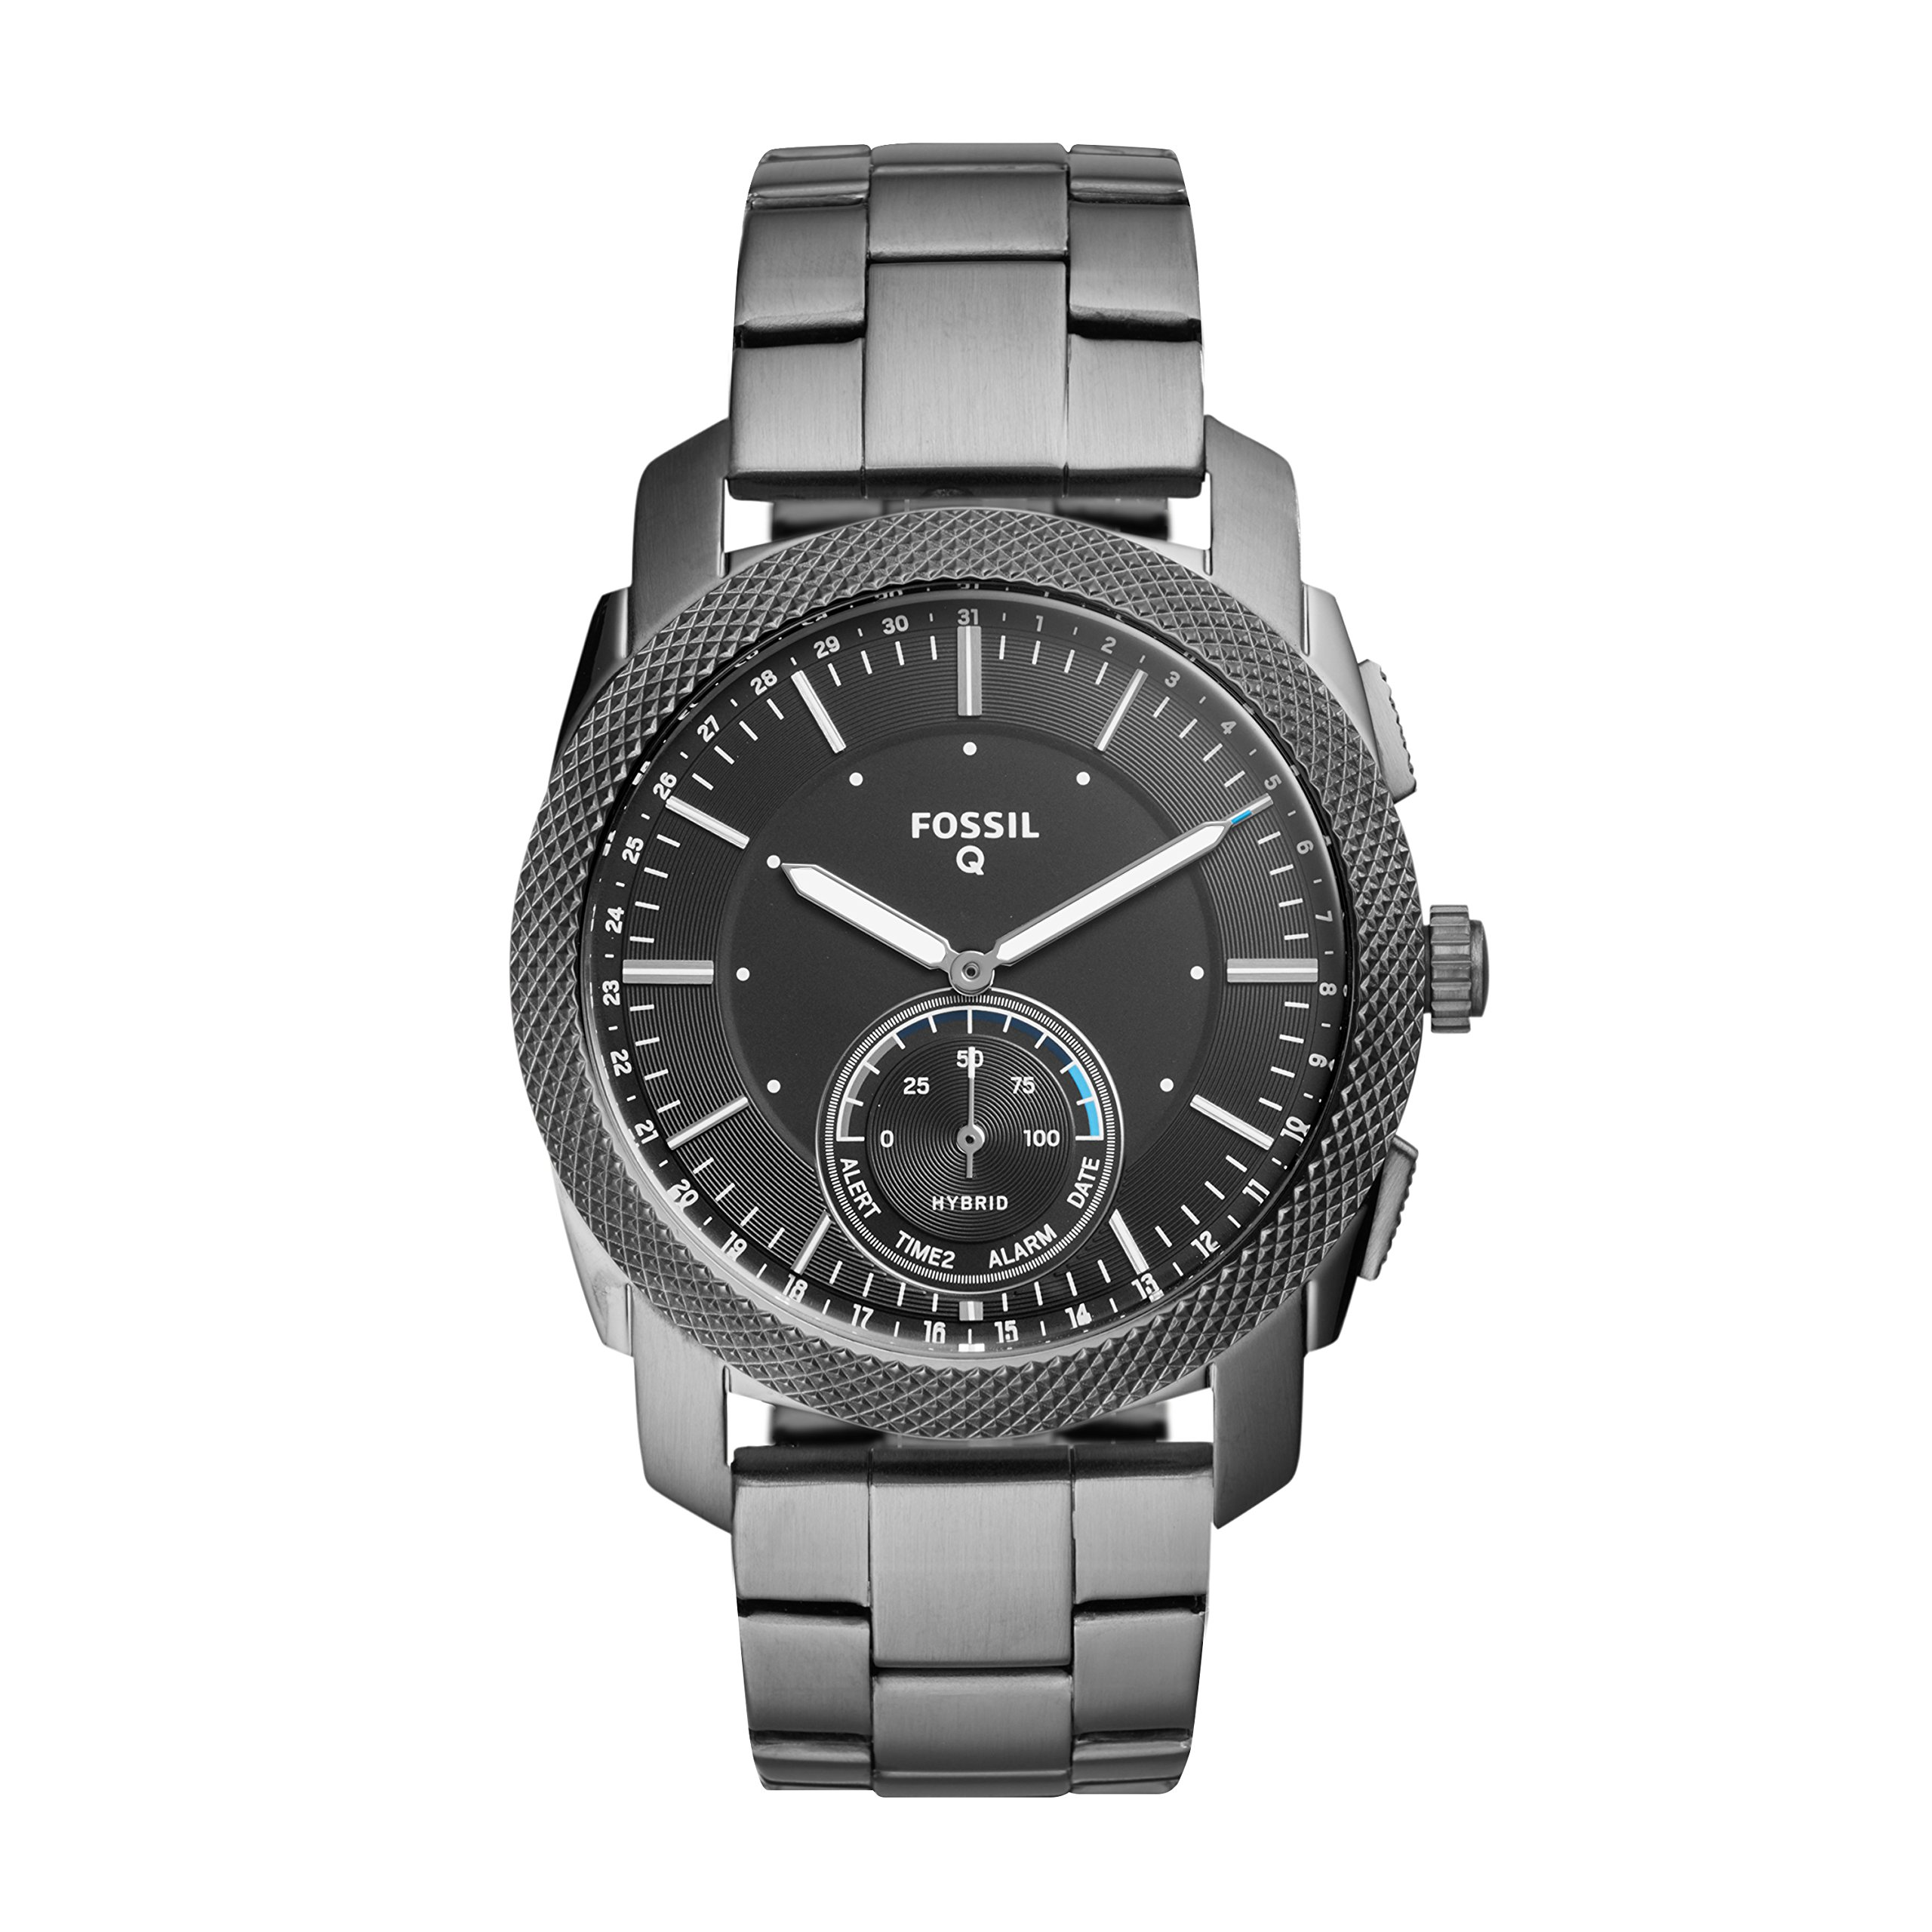 Fossil Q Men's Machine Stainless Steel Hybrid Smartwatch, Color: Grey (Model: FTW1166) by Fossil